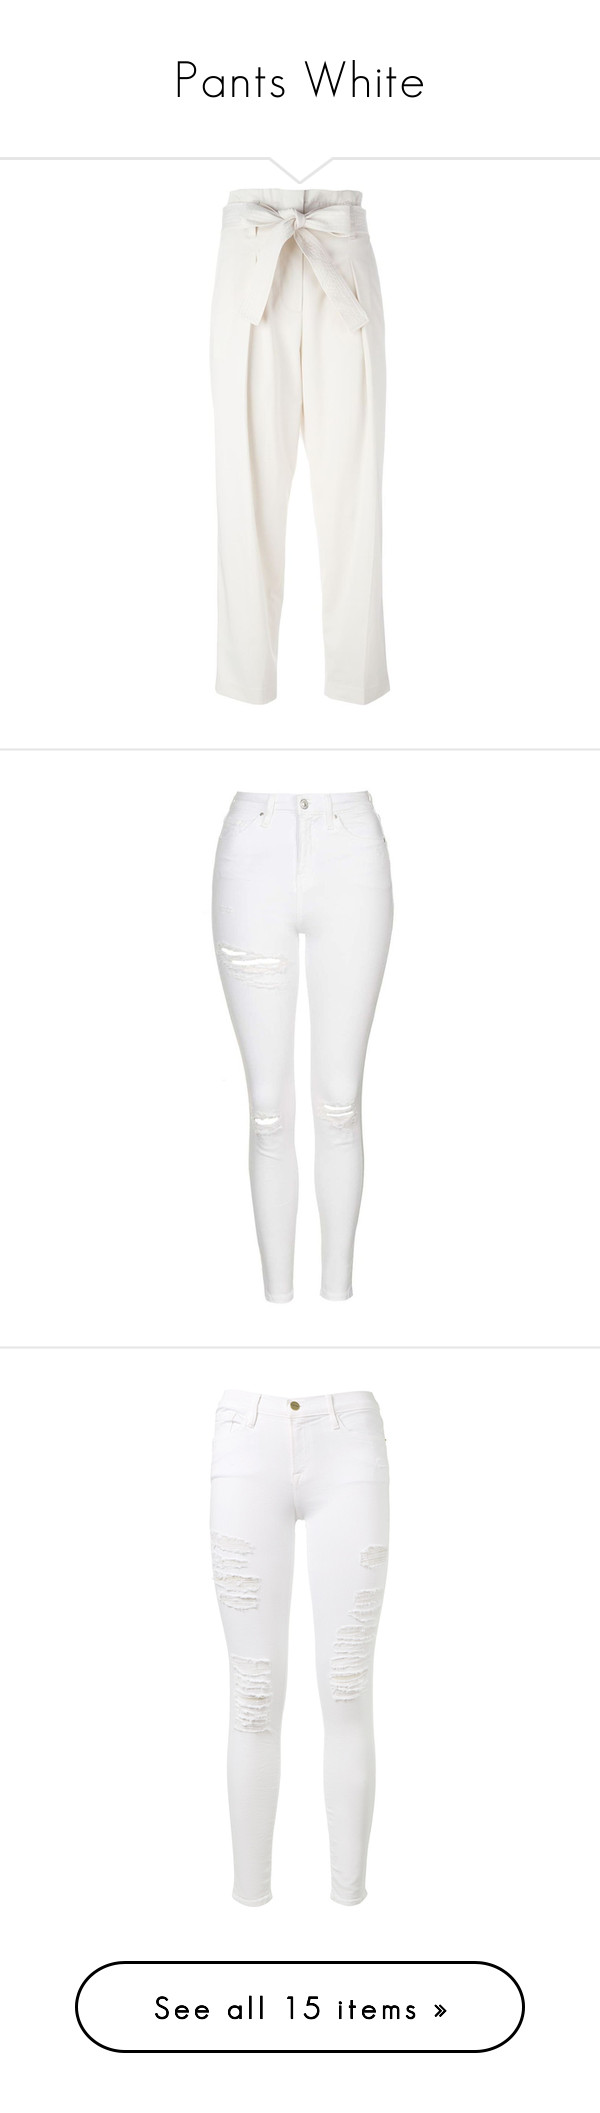 """""""Pants White"""" by sabrina-bento-1 ❤ liked on Polyvore featuring pants, capris, bottoms, high-waisted trousers, high waisted cropped pants, high-waisted pants, straight leg pants, pleated pants, jeans and ripped skinny jeans"""